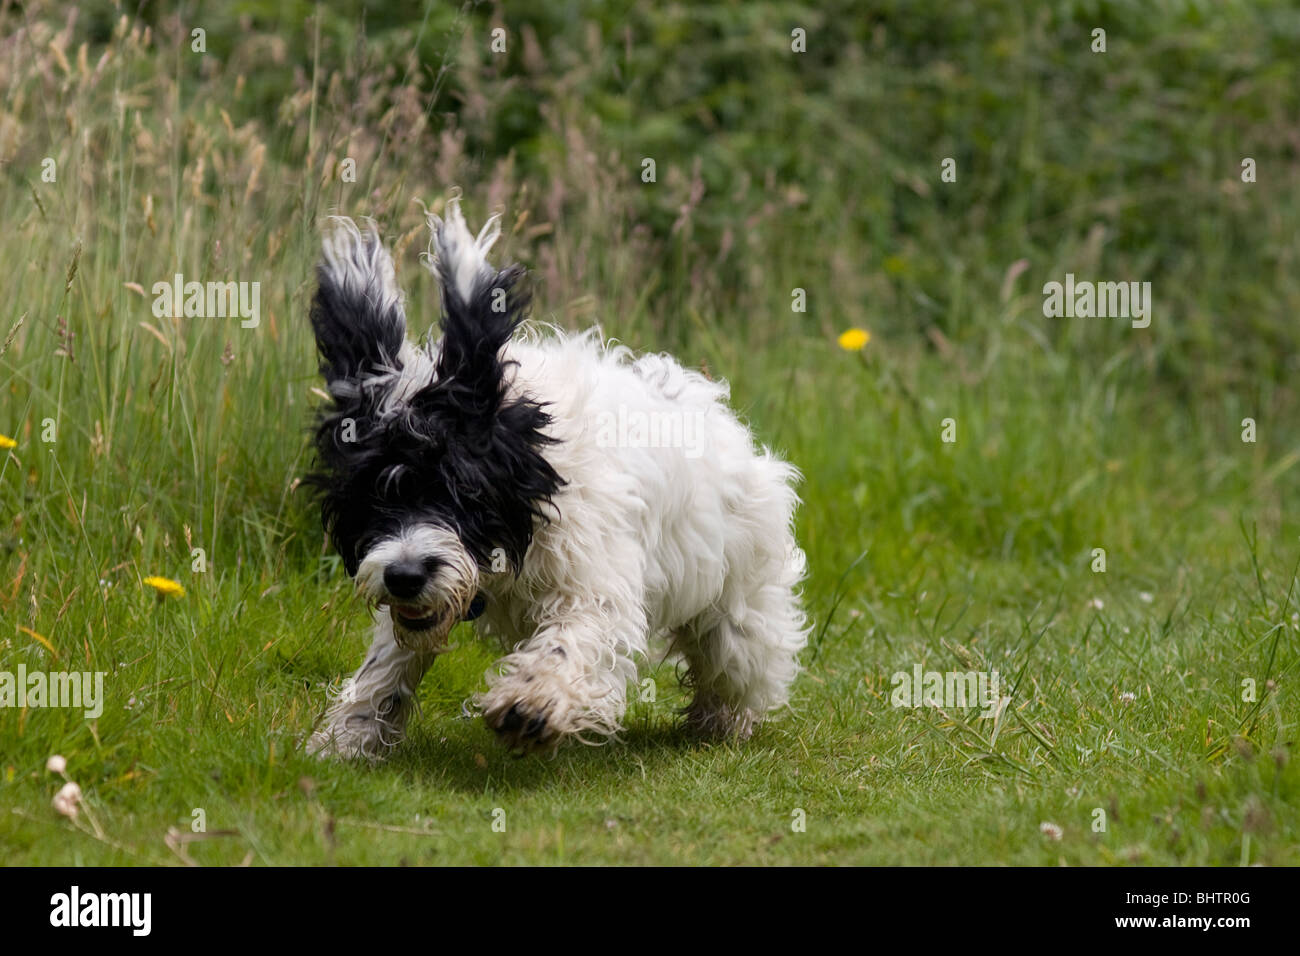 cockerpoo puppy running in countryside - Stock Image